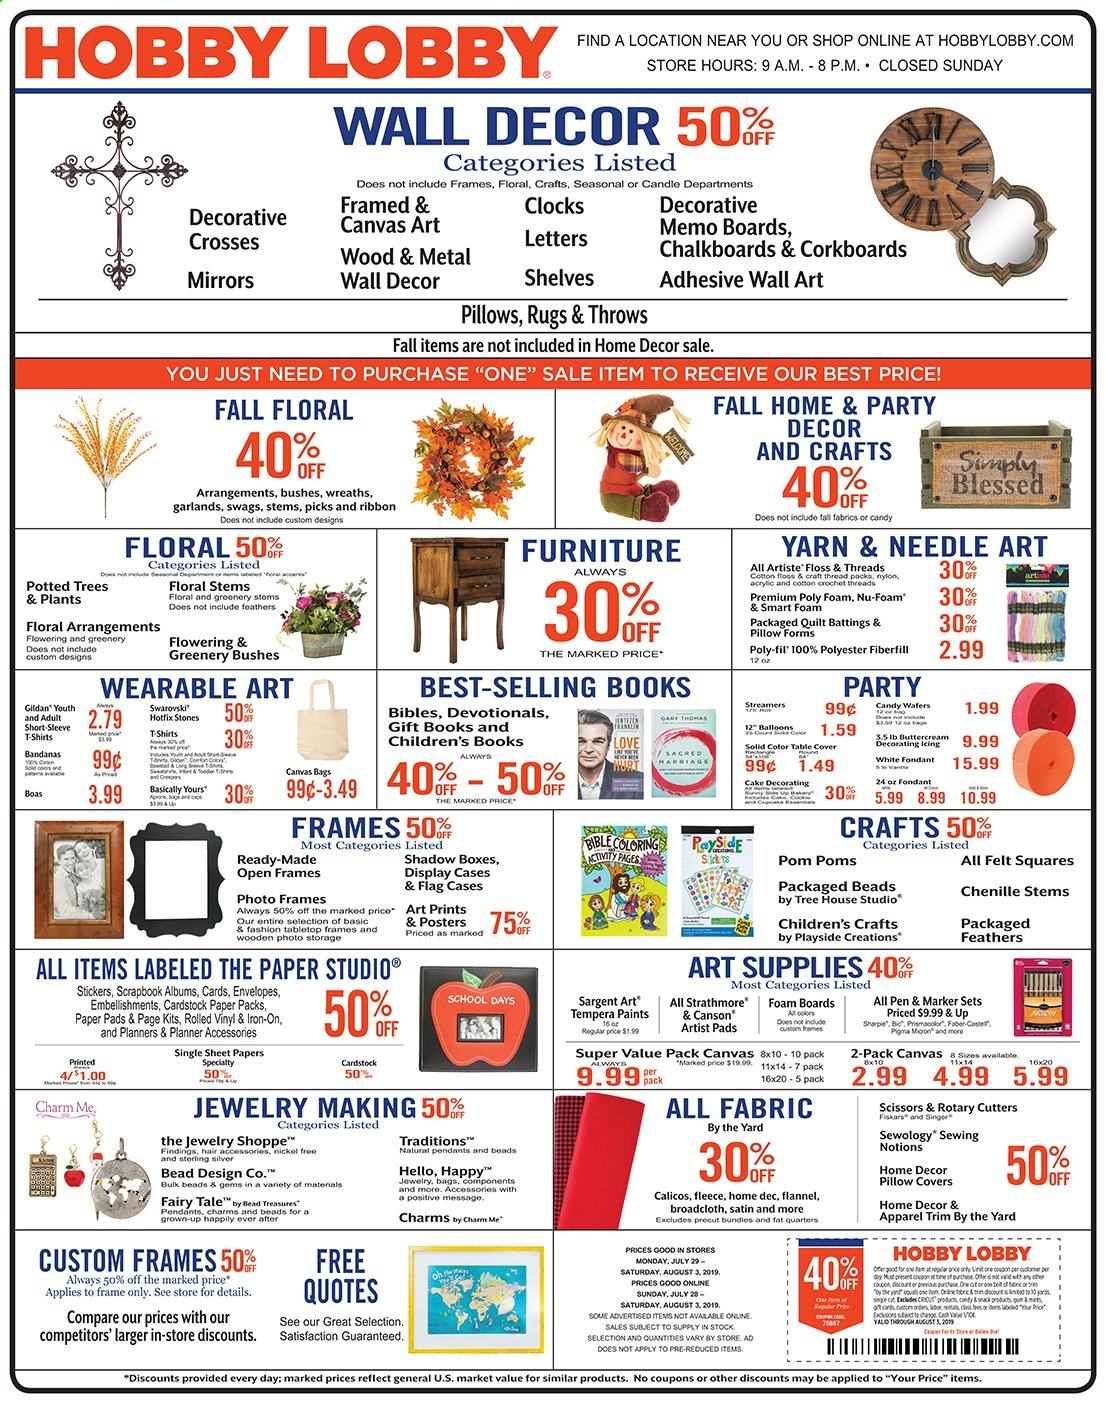 Hobby Lobby Flyer - 07.28.2019 - 08.03.2019 - Sales products - box, sticker, pen, scissors, envelope, paper, ribbon, sheet, pillow, pillow cover, wall decor, pad, throws, charm. Page 1.